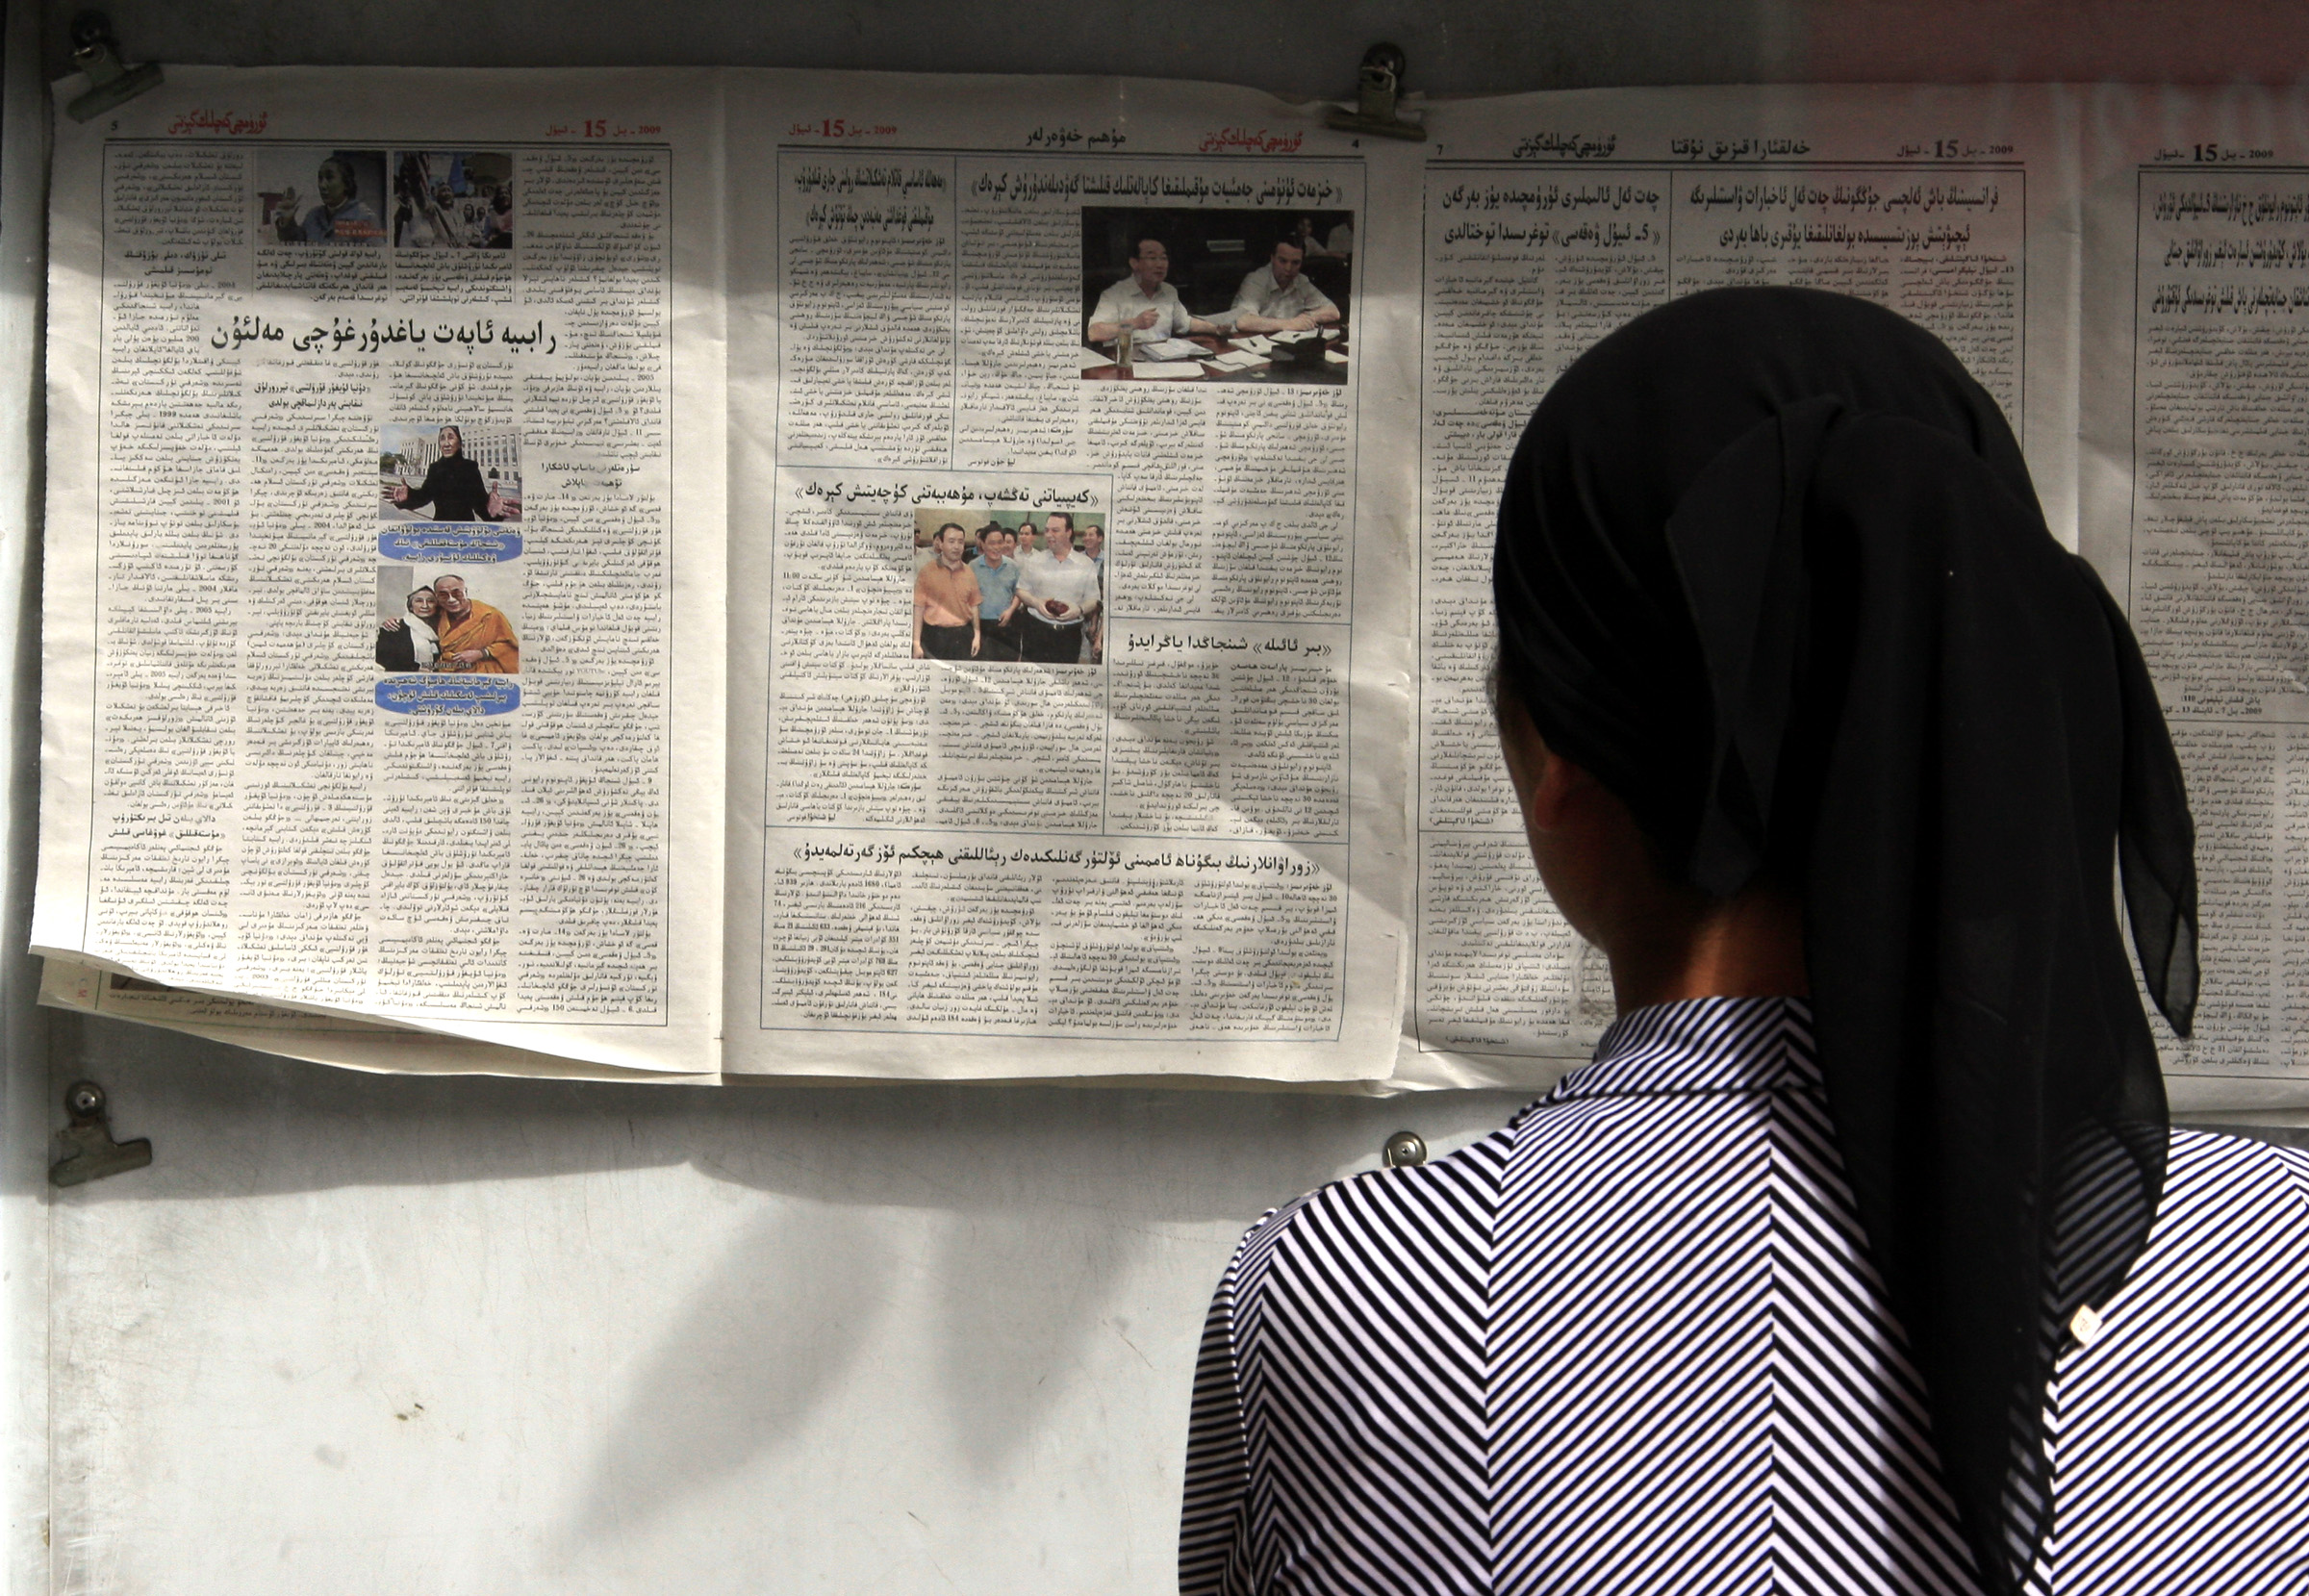 An ethnic Uighur women reads a newspaper on display on a notice board in the city of Urumqi in China's Xinjiang Autonomous Region/ REUTERS/David Gray